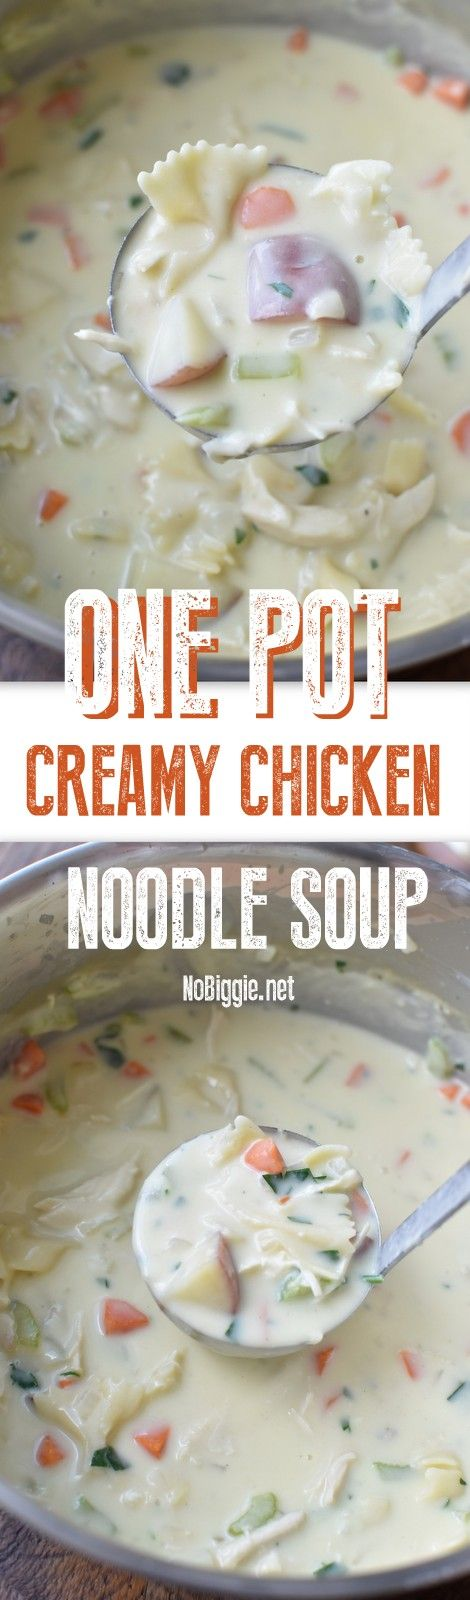 We are big fans of a one pot meal the whole family will love, and this one pot creamy chicken noodle soup is just that. Sometimes soup and salad makes a great dinner, and definitely a yummy lunch the next day…that's hoping you have any leftovers. We have shared a few chicken noodle recipes here …